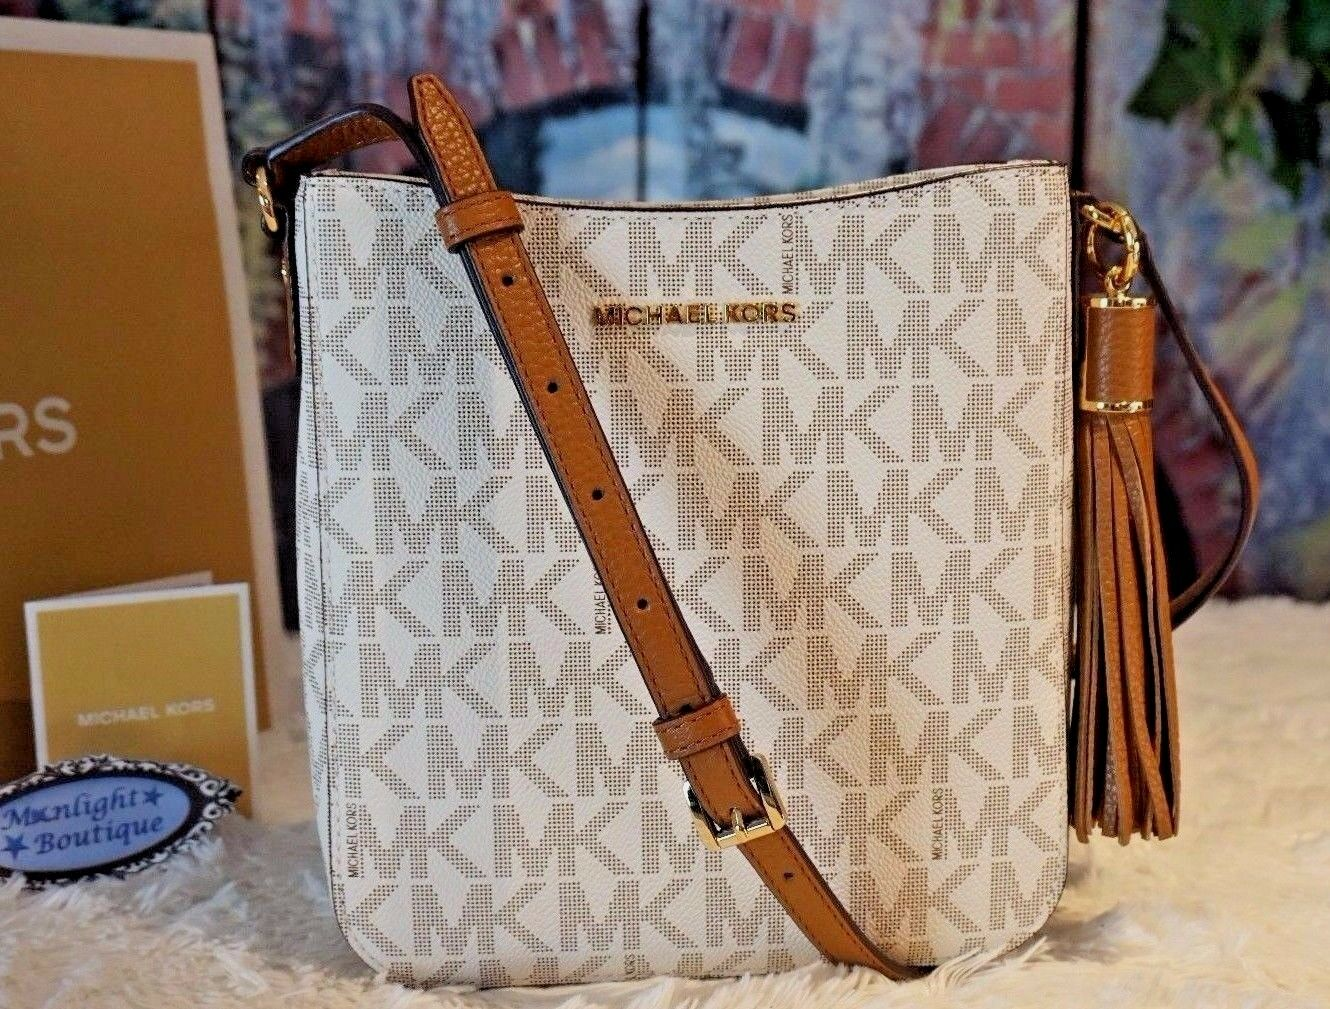 0a3682fea251 ... shopping michael kors bedford flap crossbody bag ballet leather  38h6ybfc2l res.content.global.